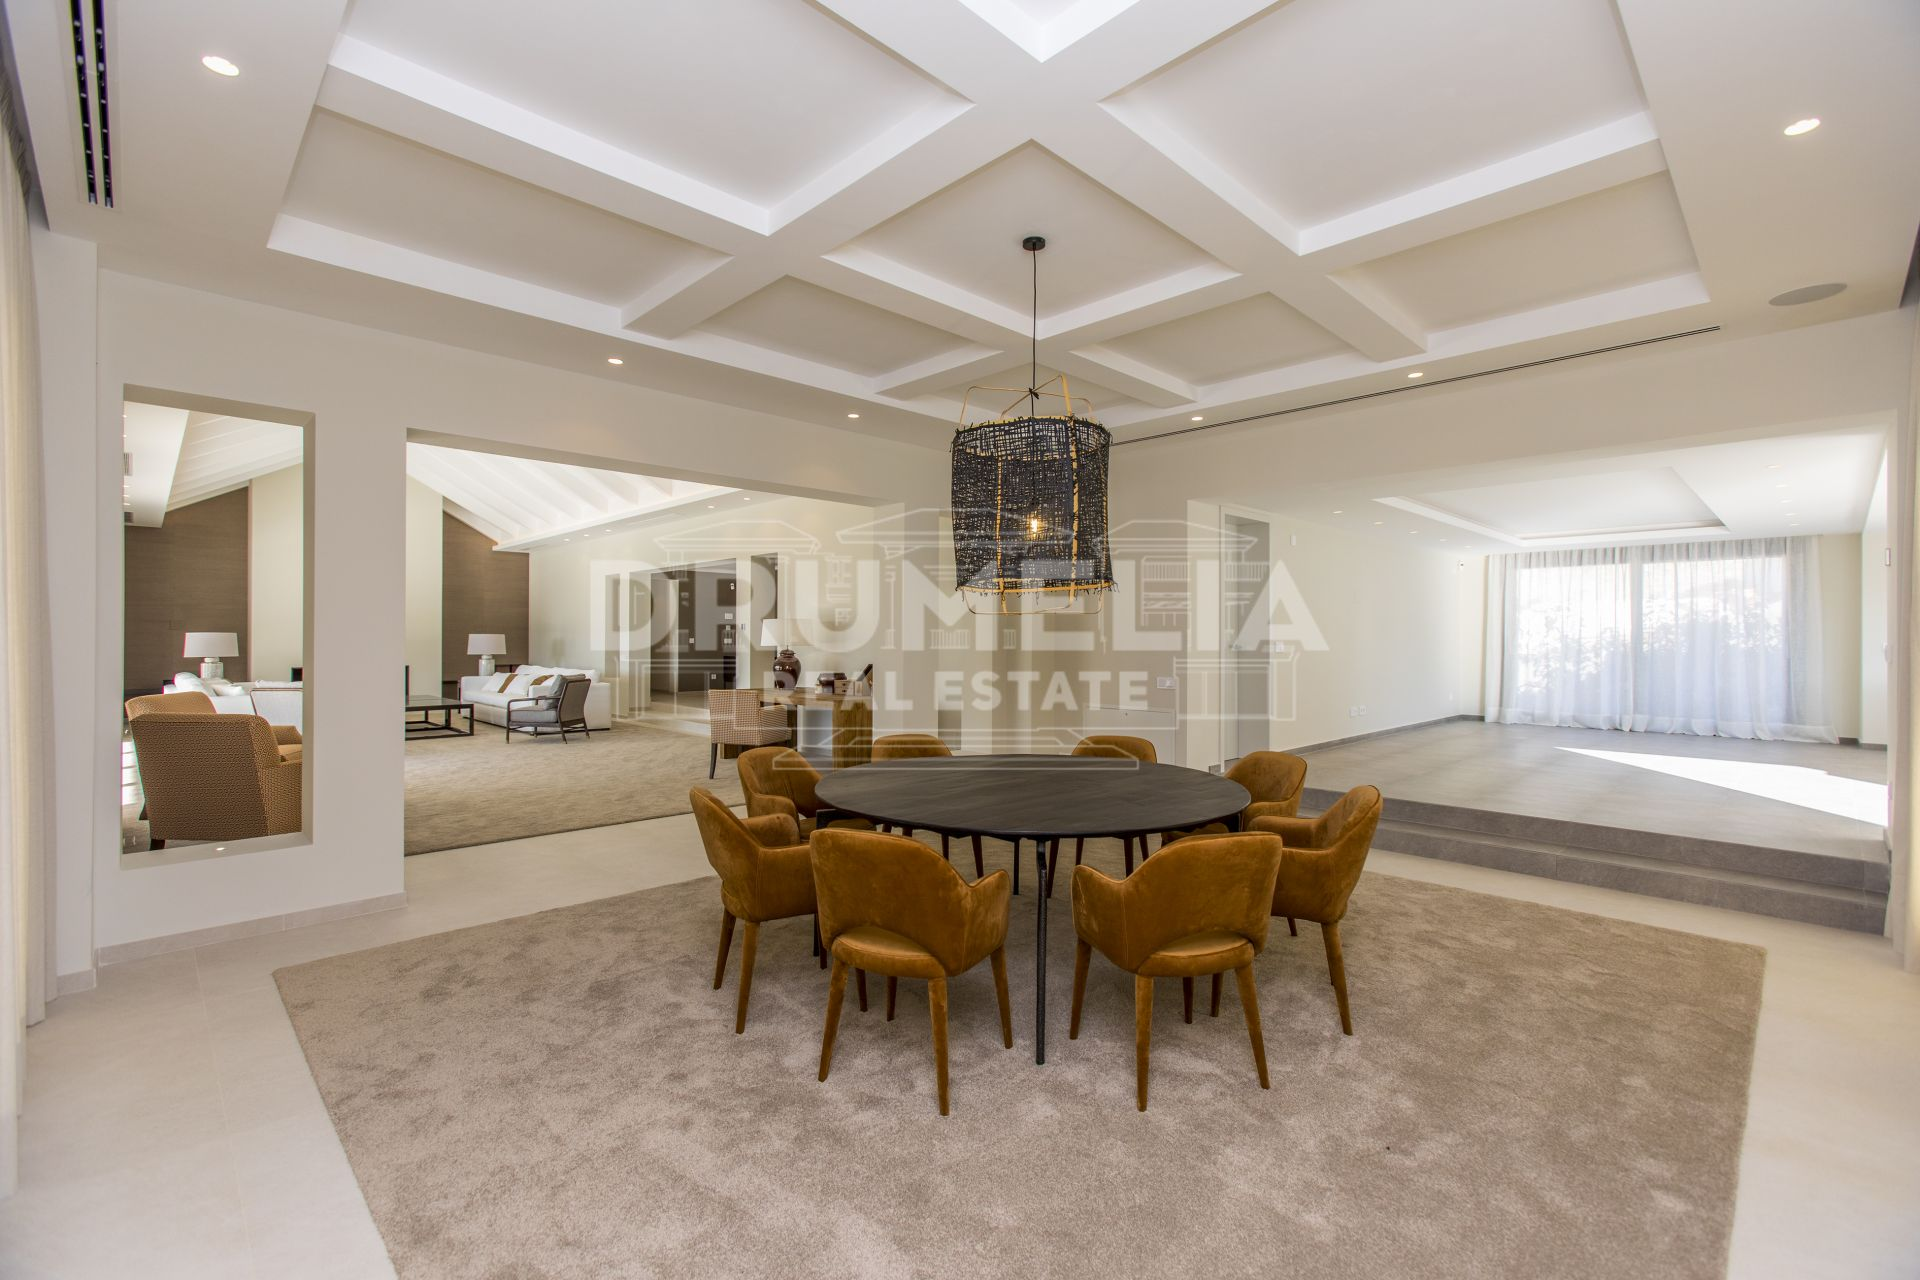 Marbella Golden Mile, Exceptional Brand New Villa in Rocio de Nagüeles, Marbella Golden Mile